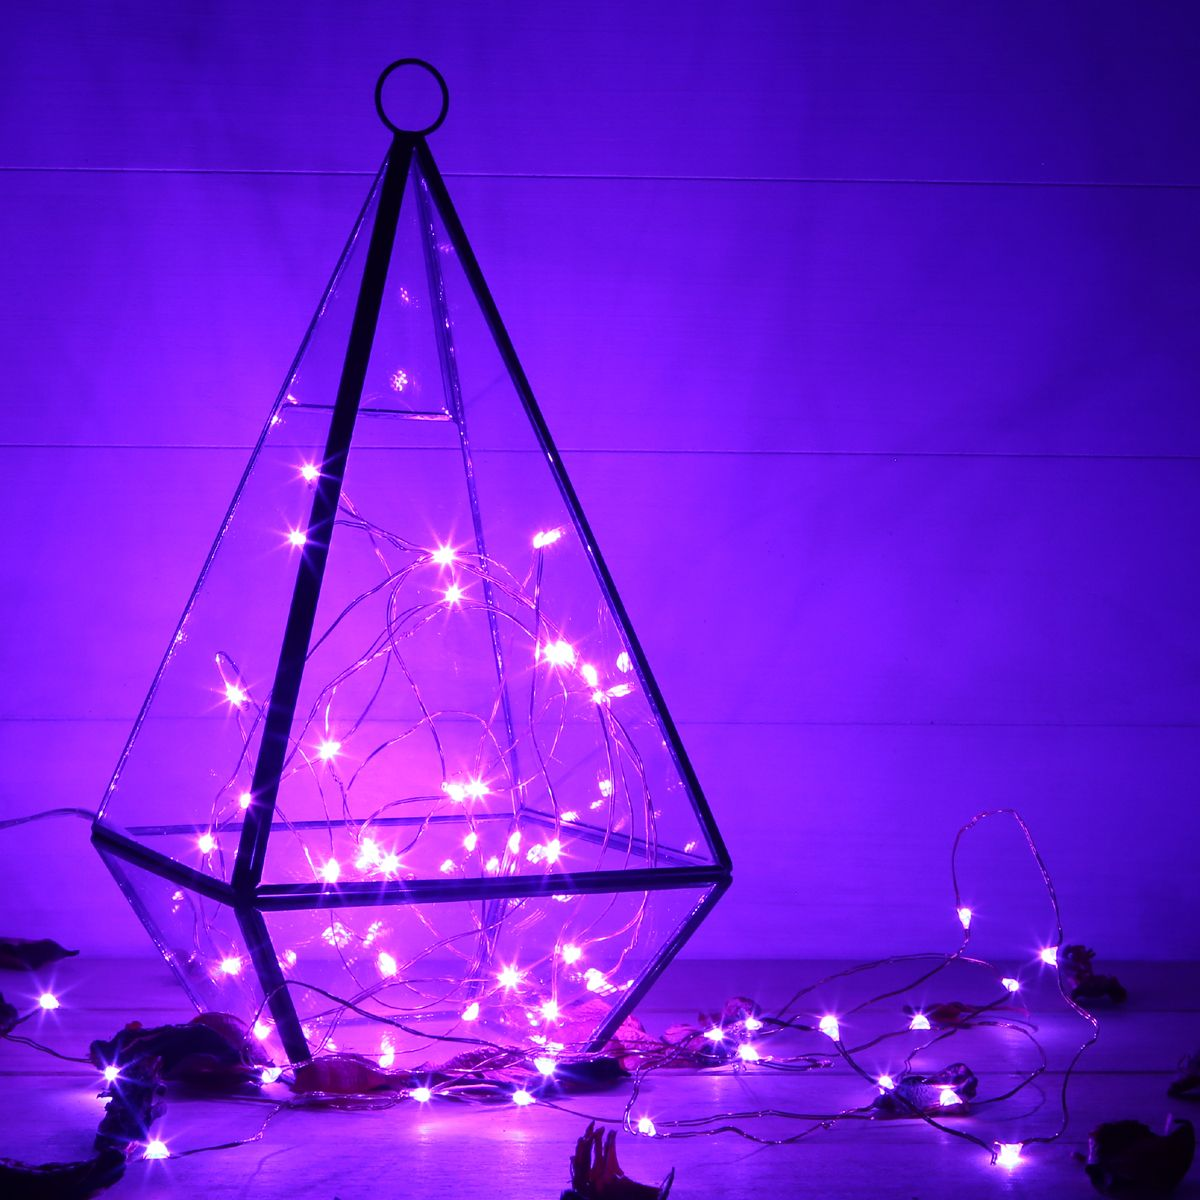 Pin on Firefly Lights in Your Bedroom